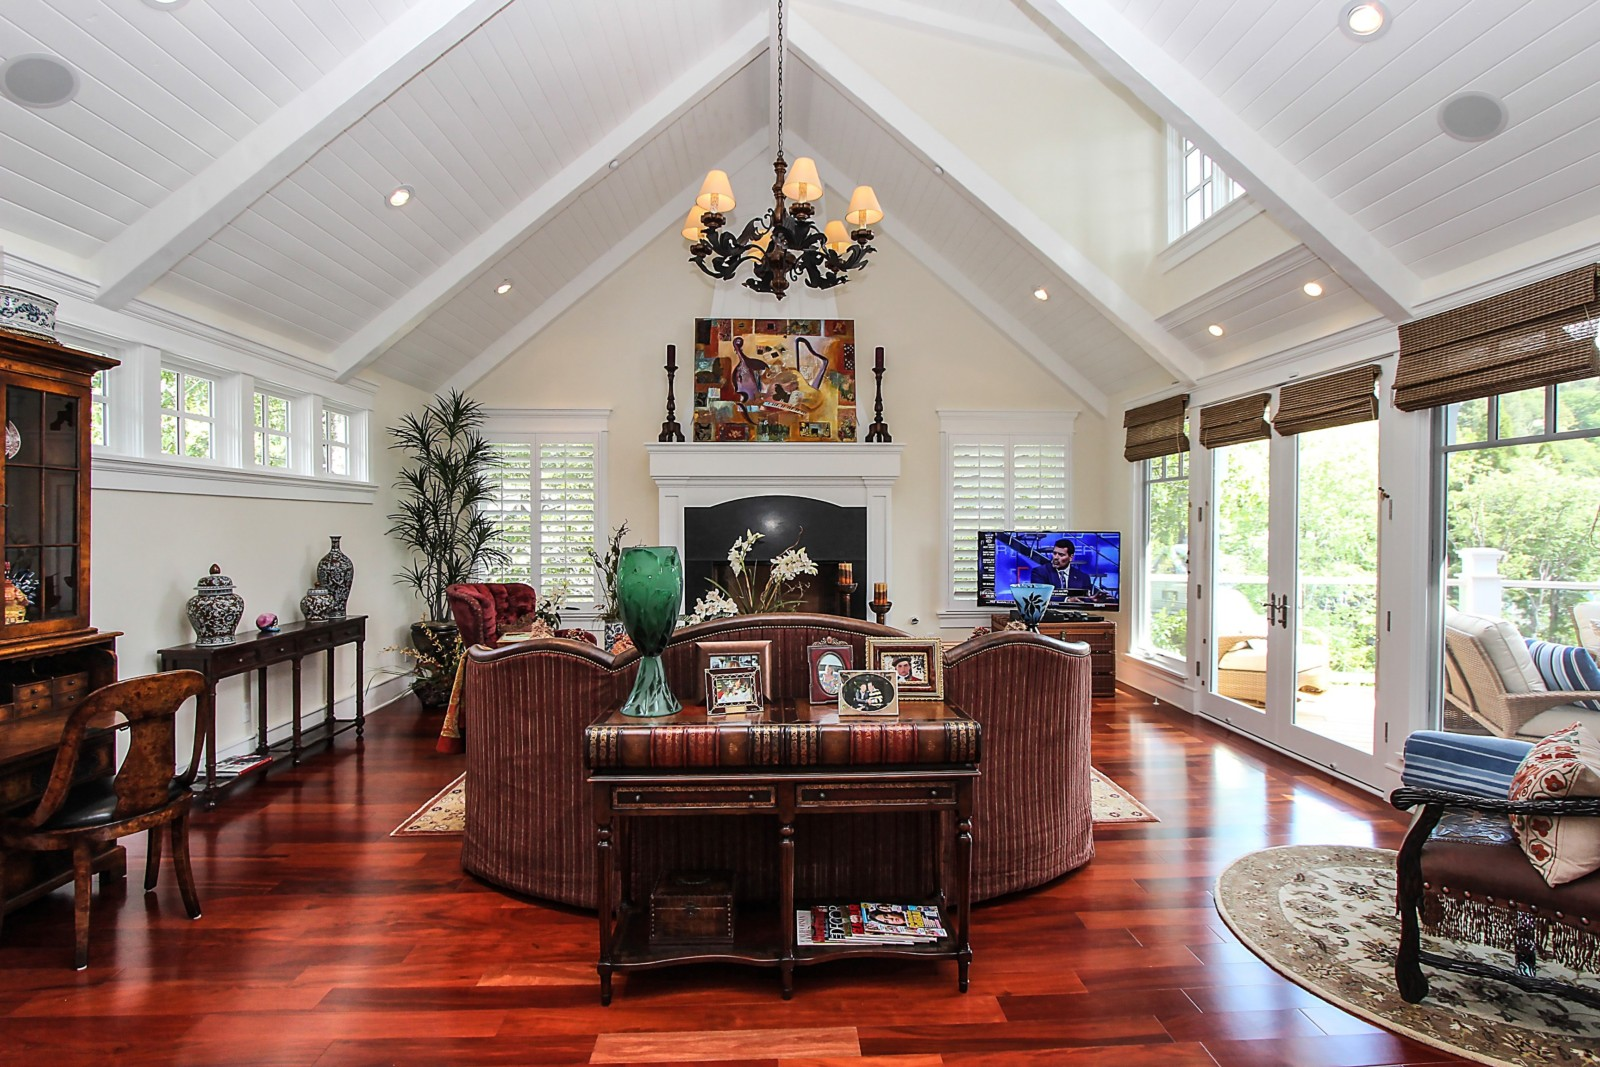 brian wilson u0026 39 s lake house on the market for  3 3m